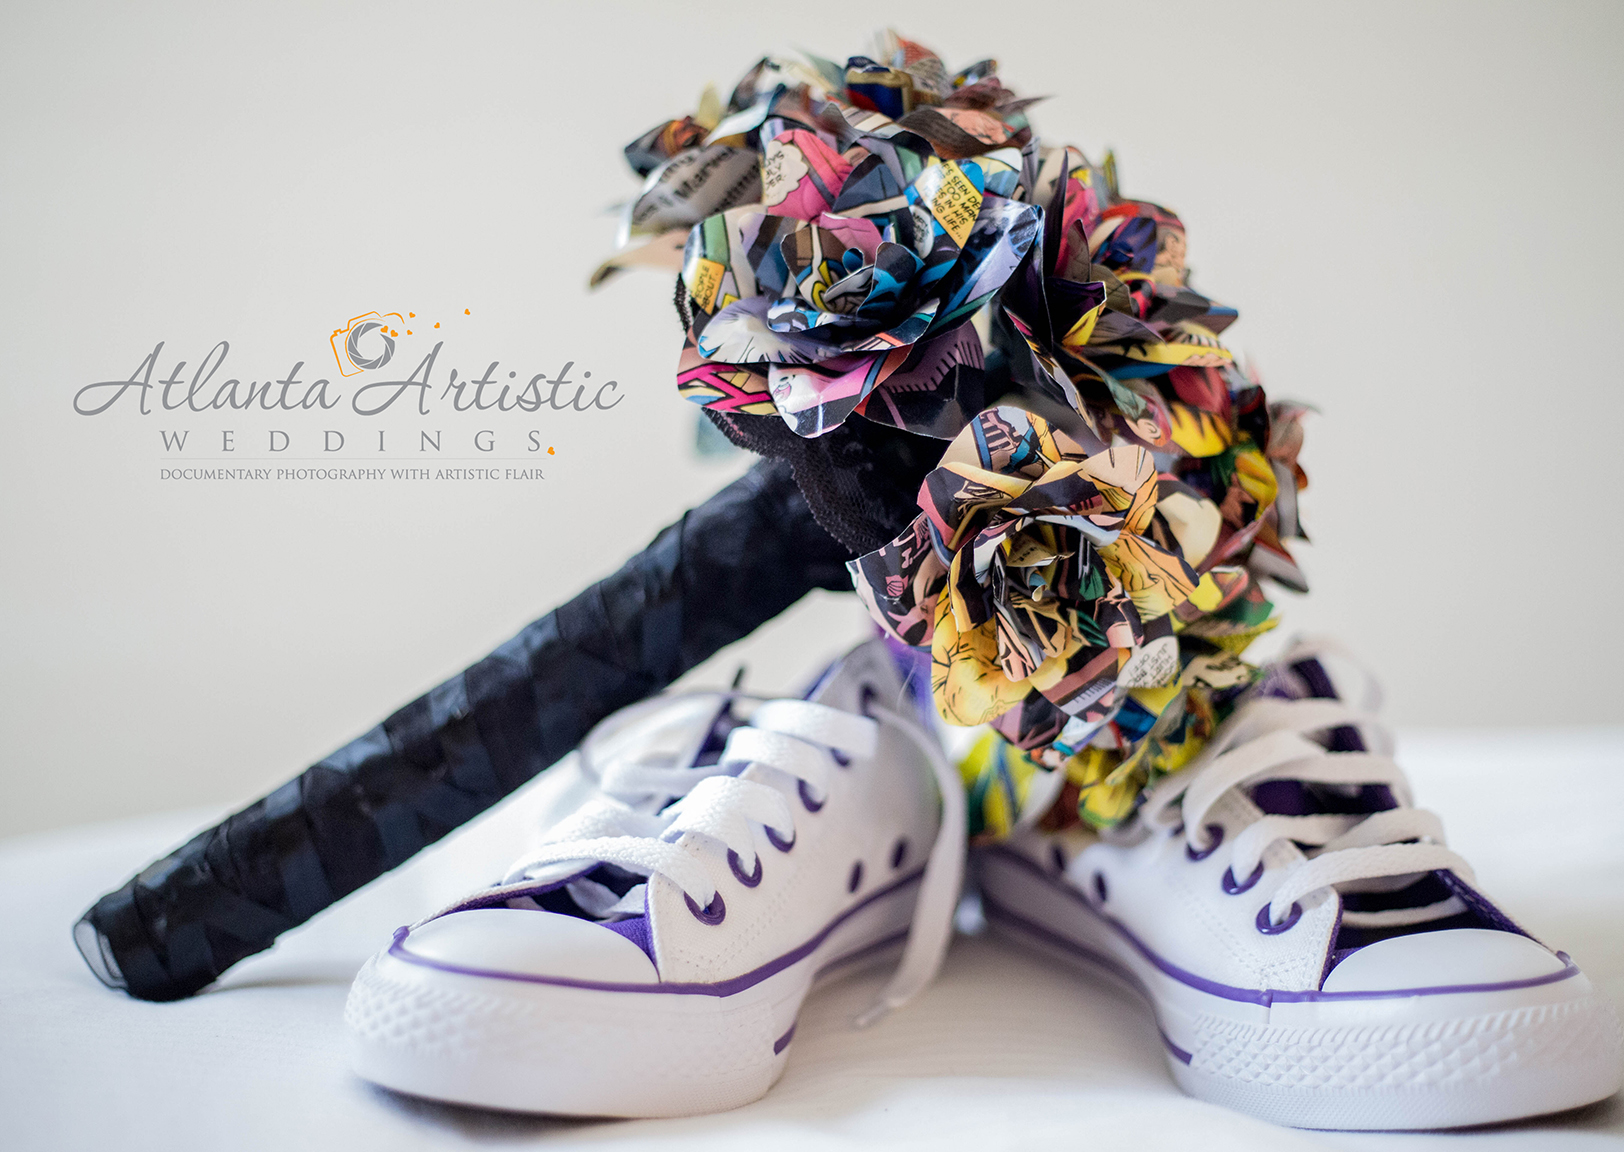 Original Bouquet made with Comic Book Images and the Bride's converse shoes